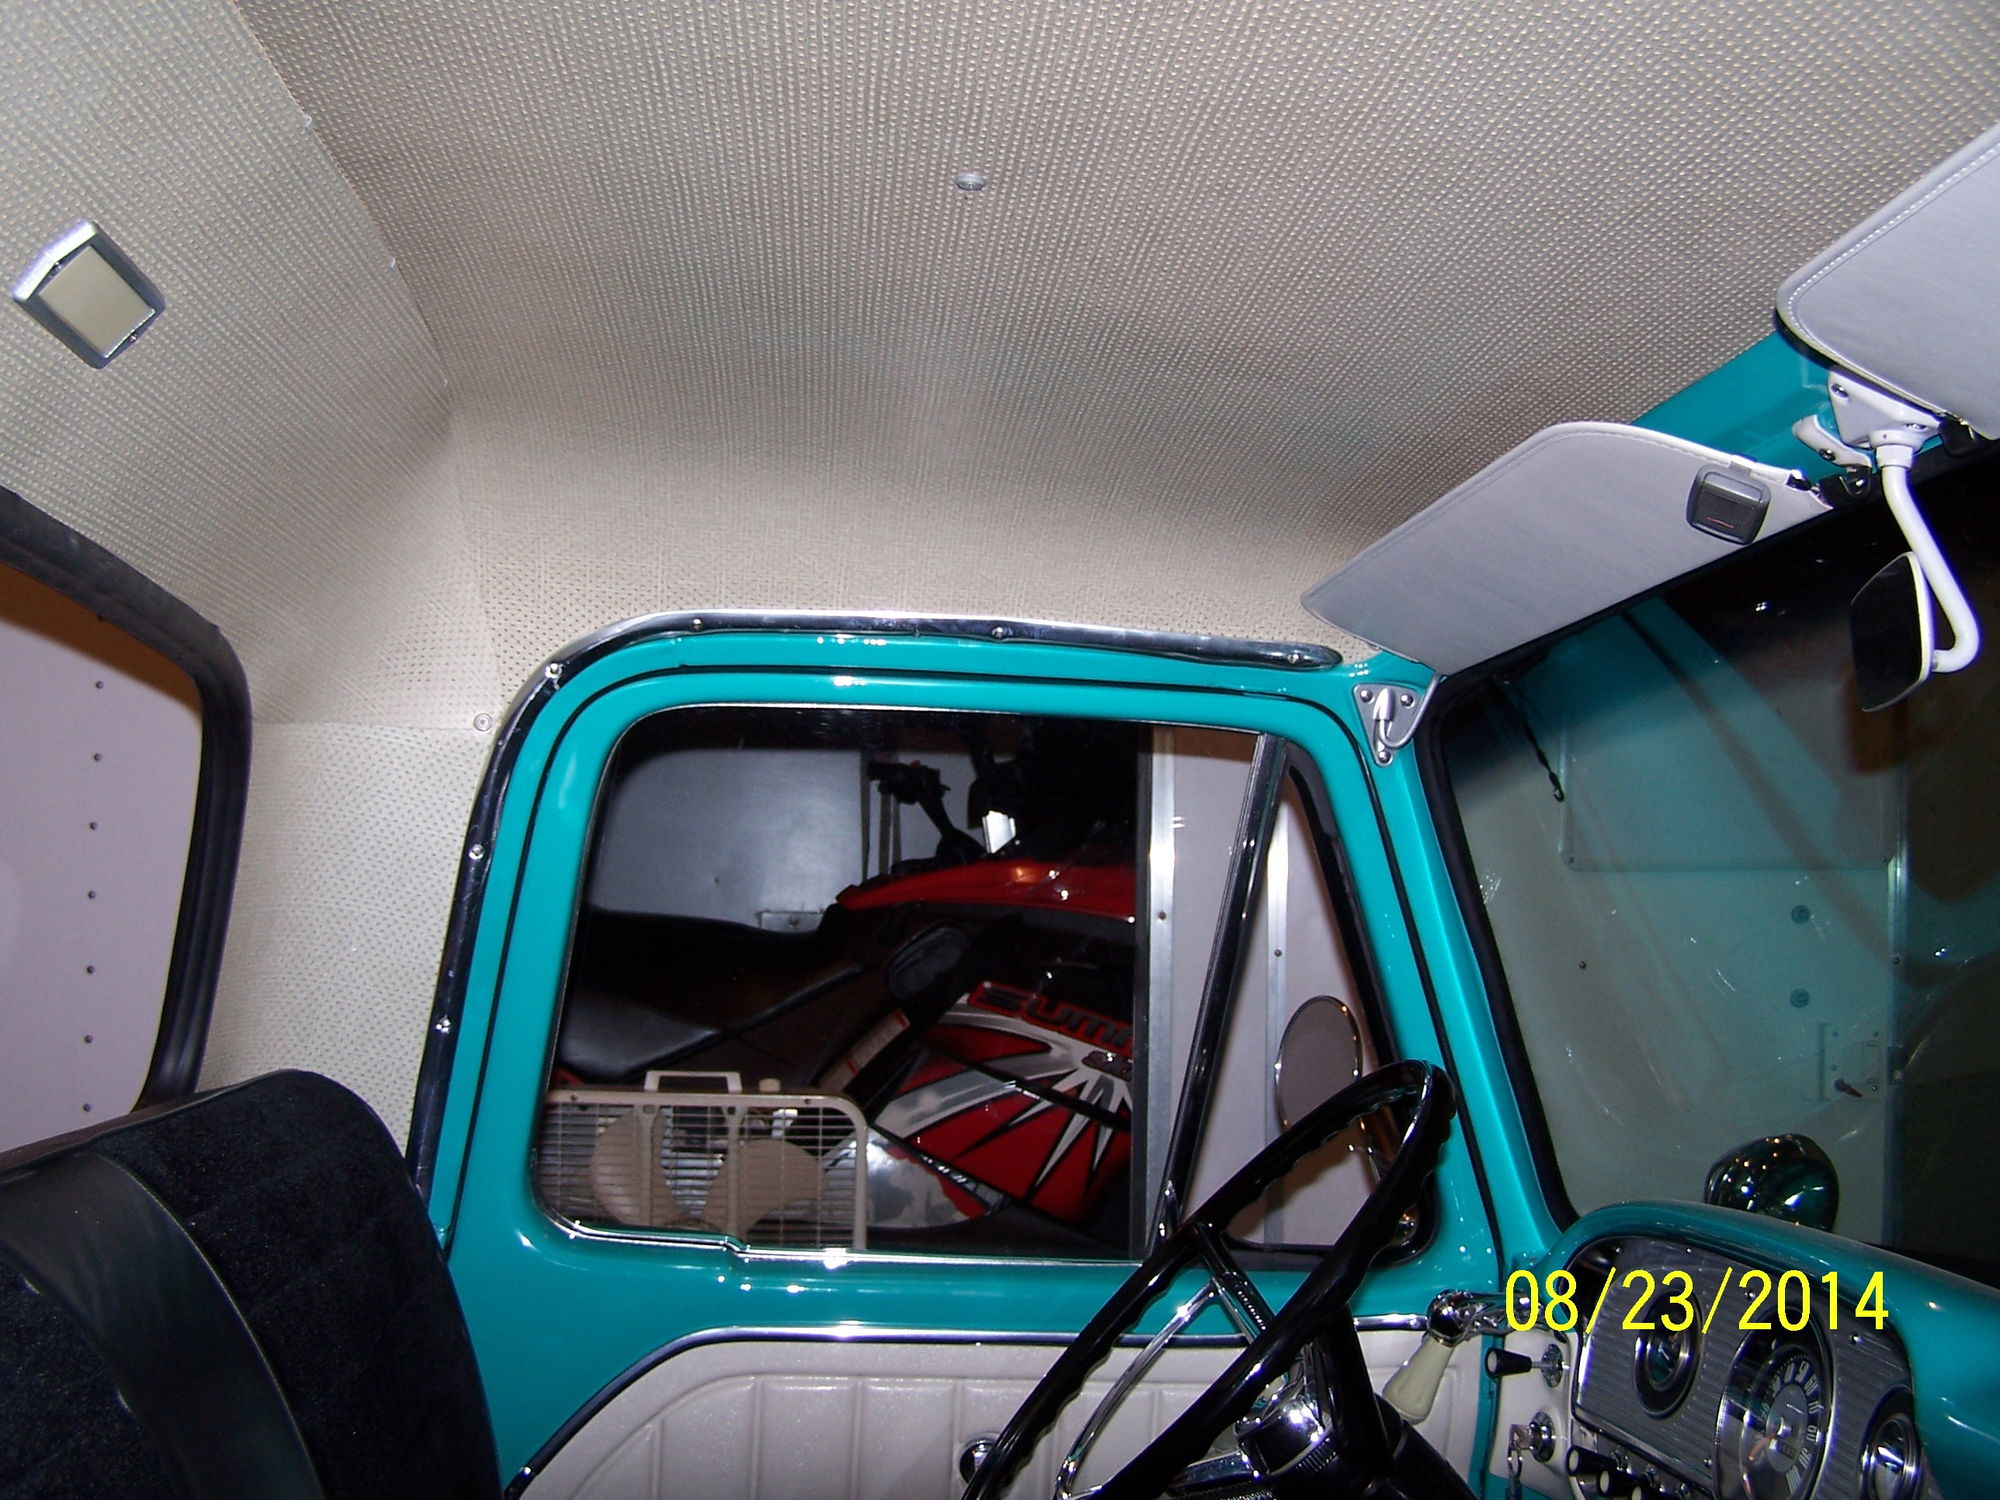 1956 ford f 100 truck mustang amp fords magazine - 8 Best 1963 Ford F 100 F100 Images On Pinterest Ford Ford Trucks And Trucks